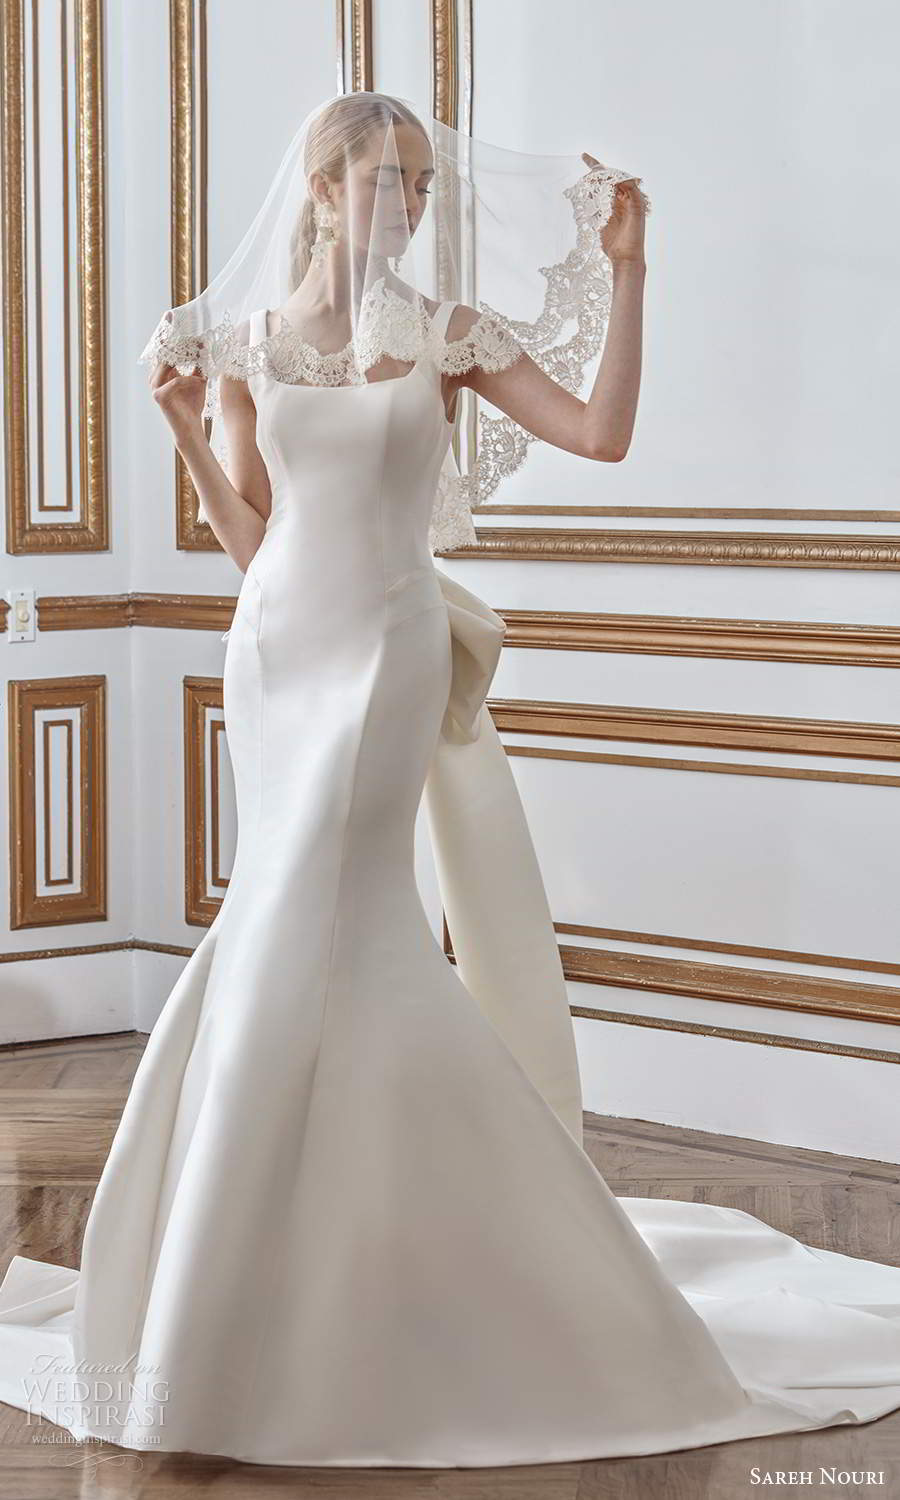 sareh nouri fall 2021 bridal sleeveless thick straps square neckline clean minimalist mermaid wedding dress bow back chapel train veil (5) mv